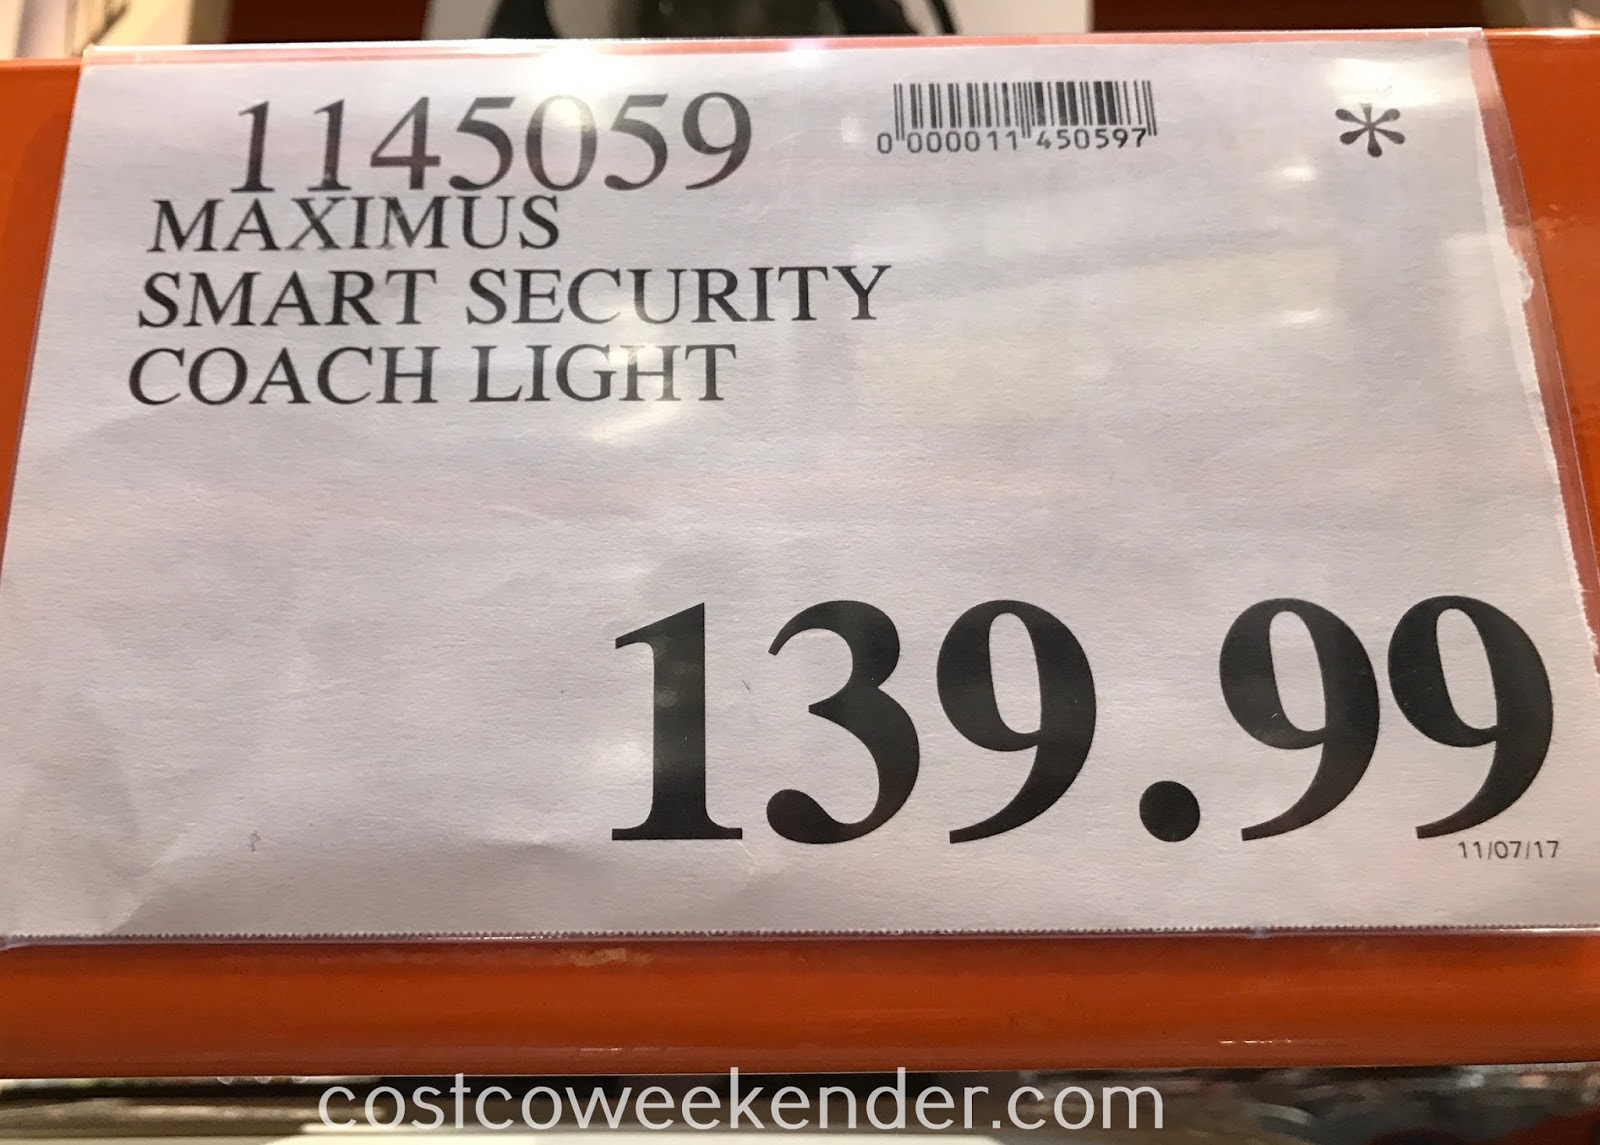 Deal for the Maximus Smart Security Coach Light at Costco